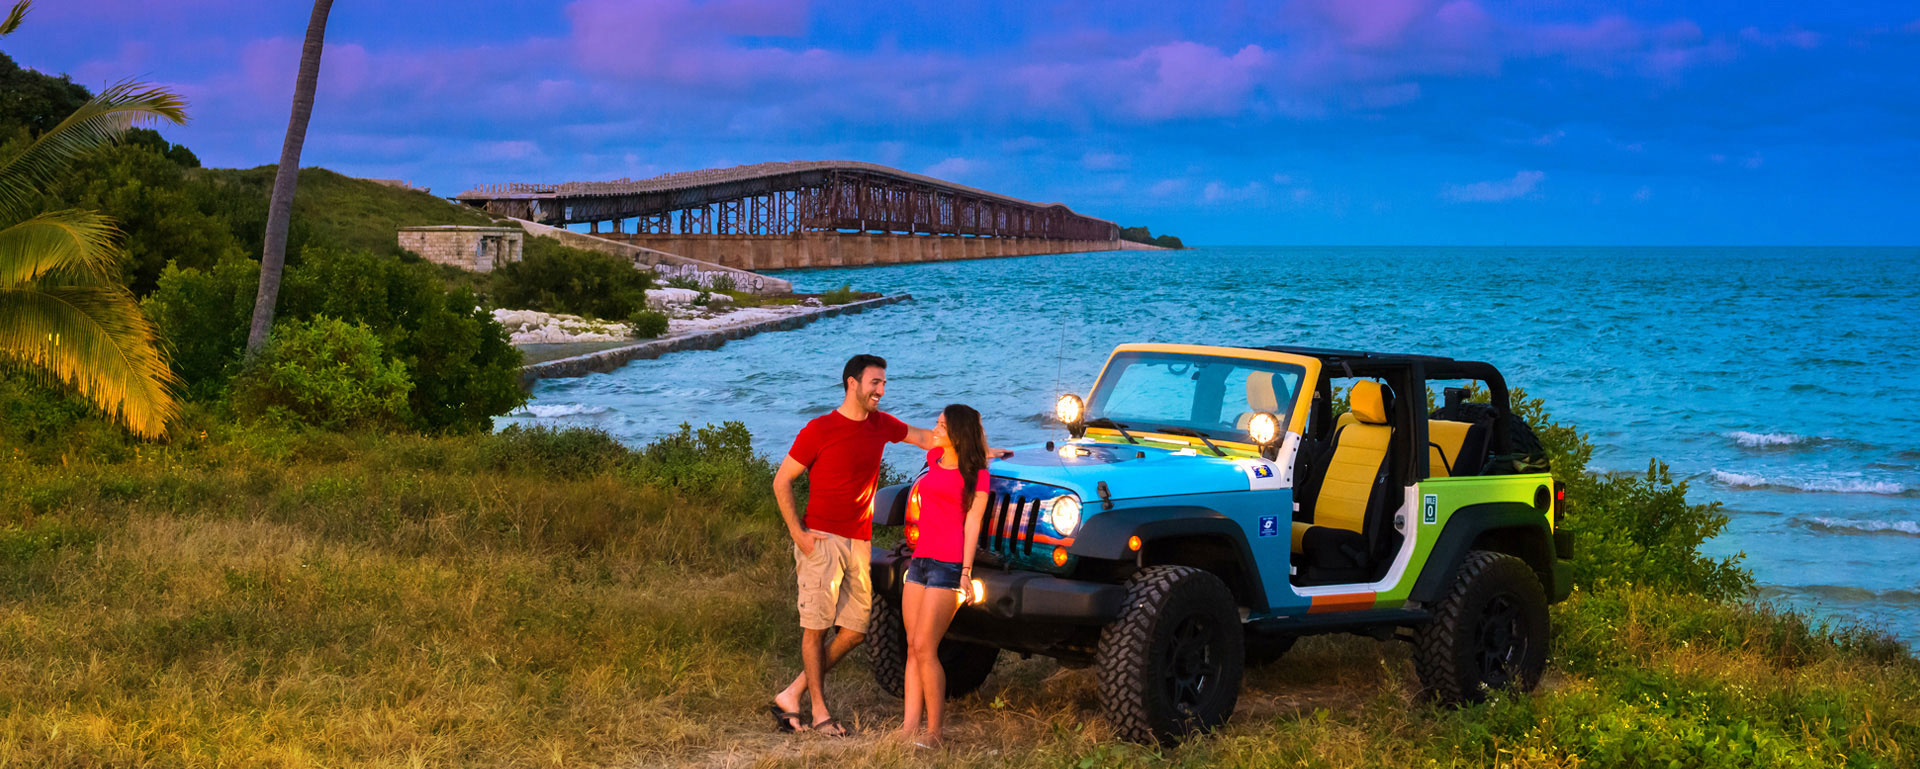 Couple with a Jeep at dusk near the Old 7 mile bridge